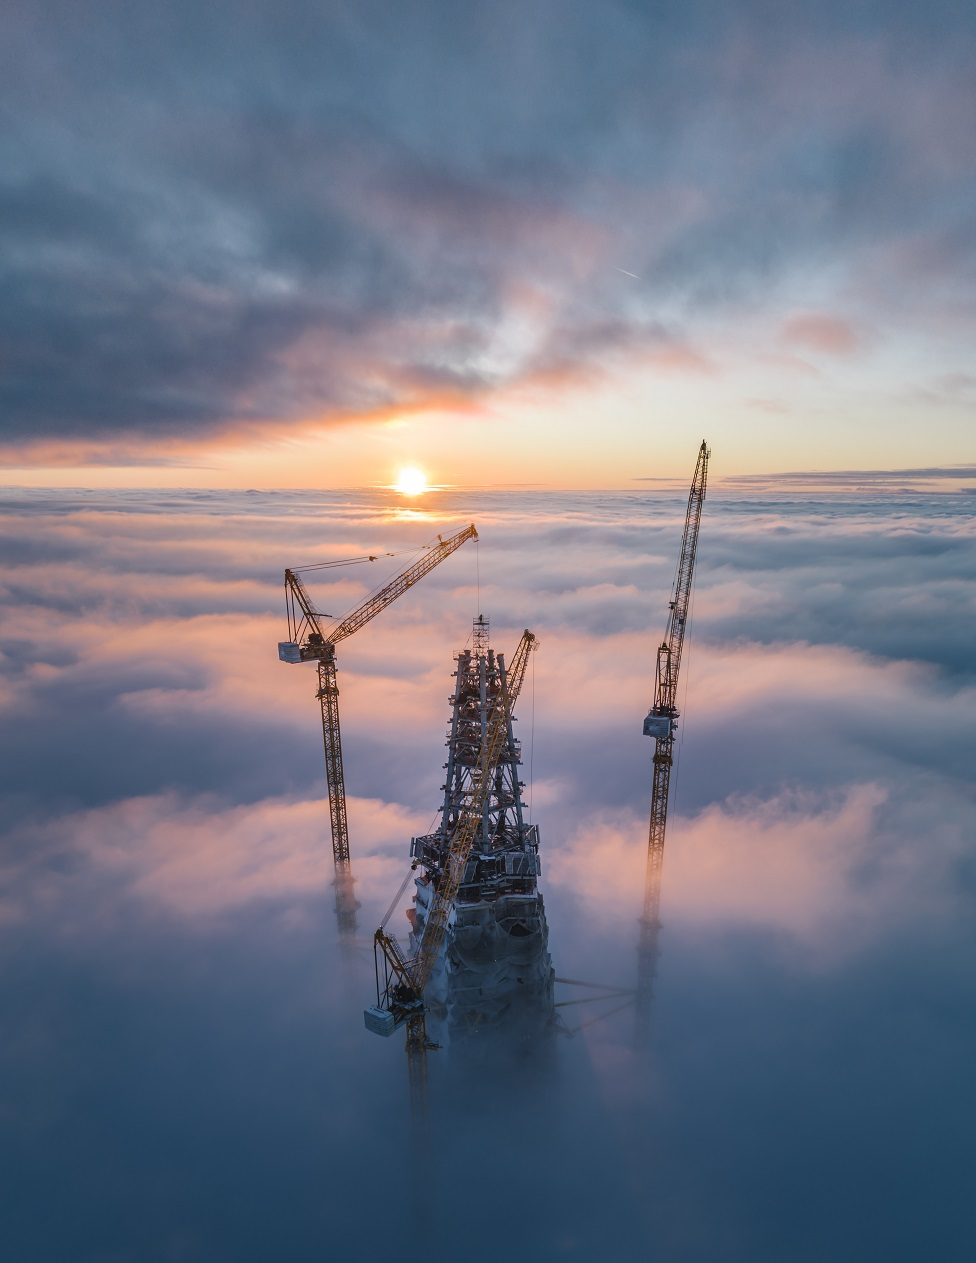 A skyscraper and two cranes poking above clouds